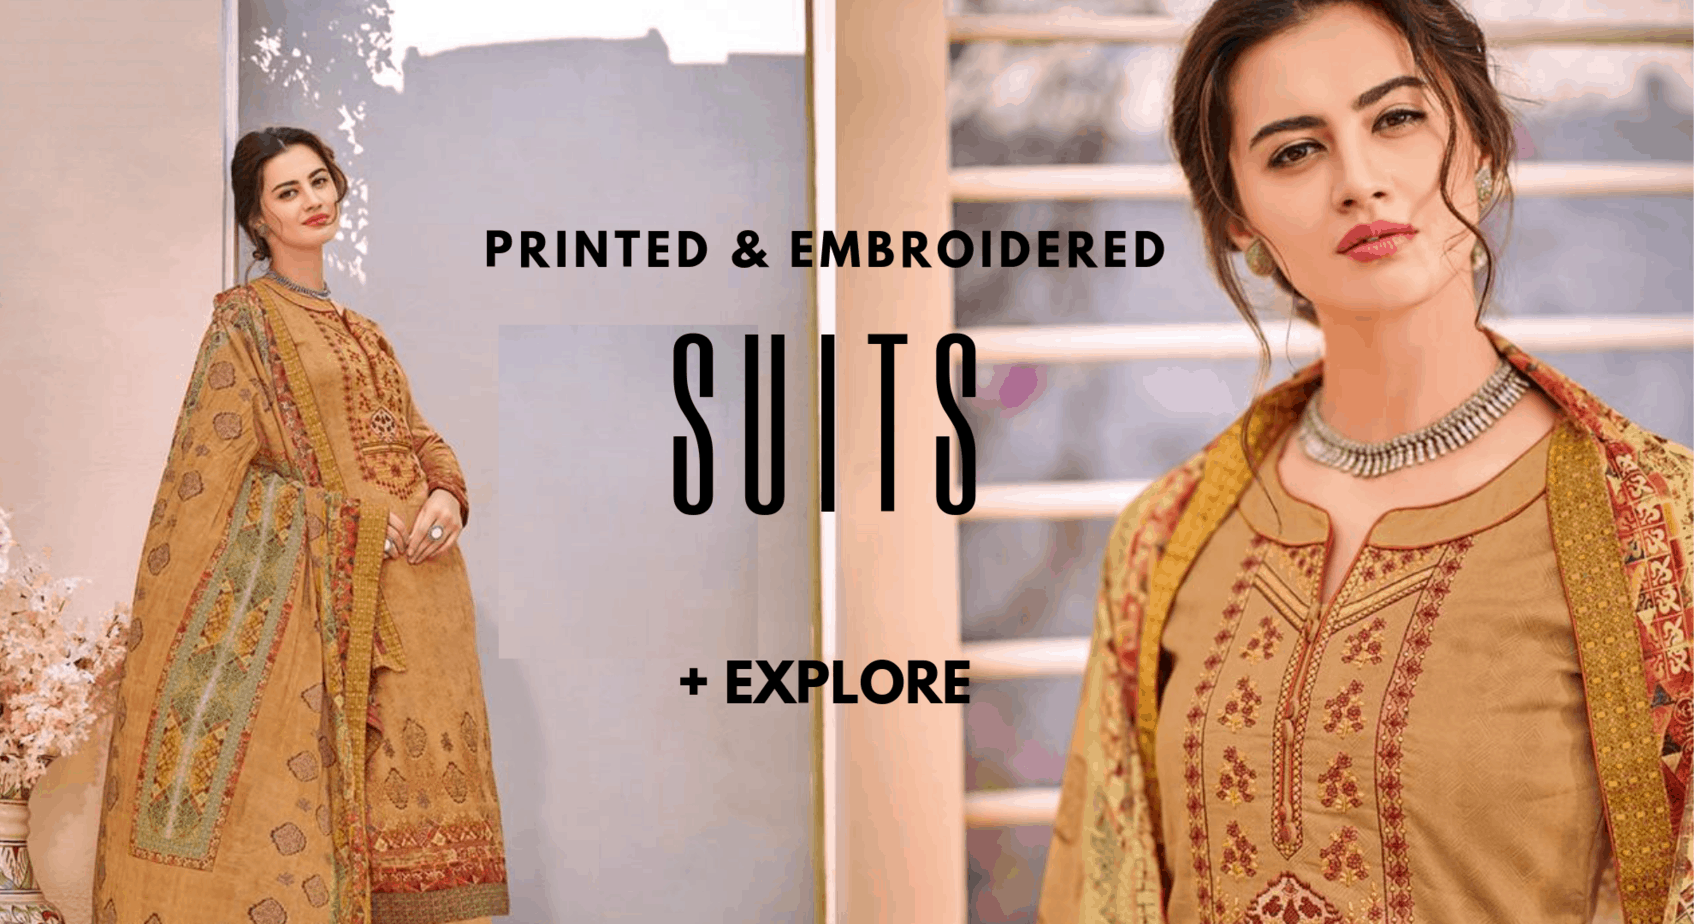 PRINTED & EMBROIDERED SATIN SUITS